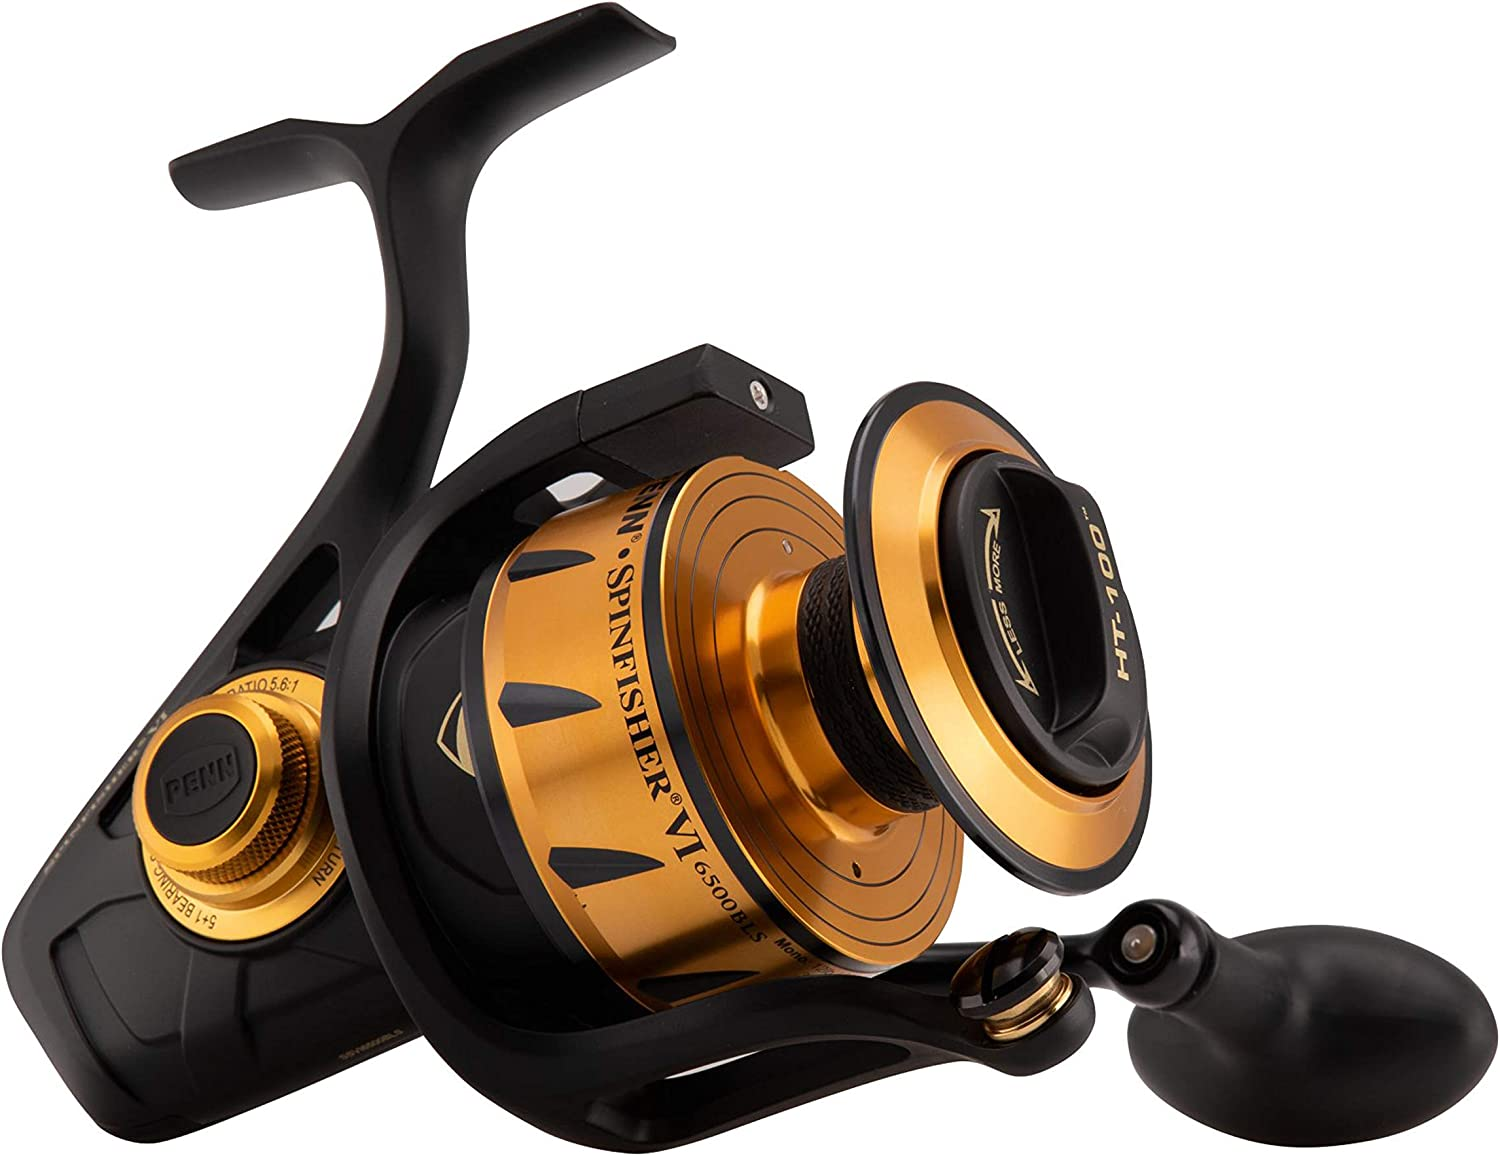 (Spinfisher VI, 6500bls)  Penn Spinfisher V & VI Spinning Fishing Reel